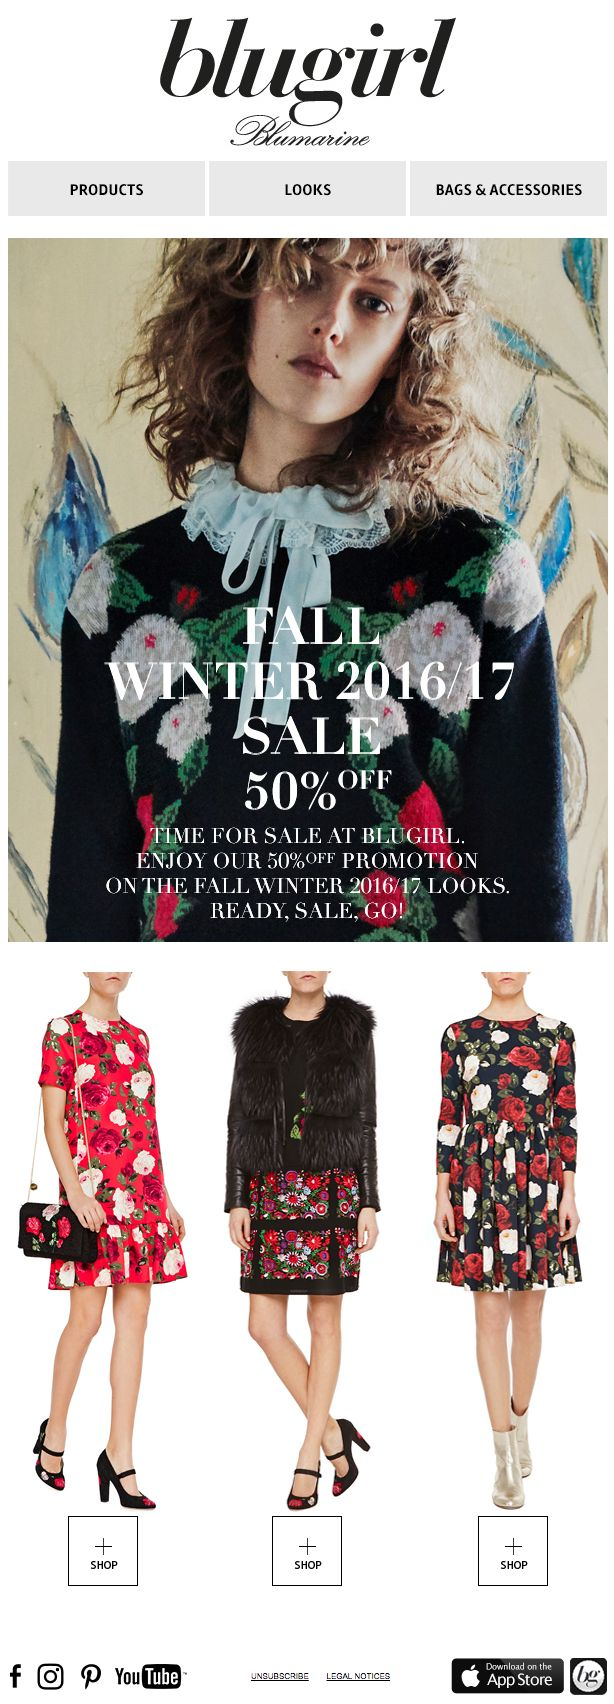 Blugirl Fall Winter Sales • 50% off on the Fall Winter 2016/2017 Collections